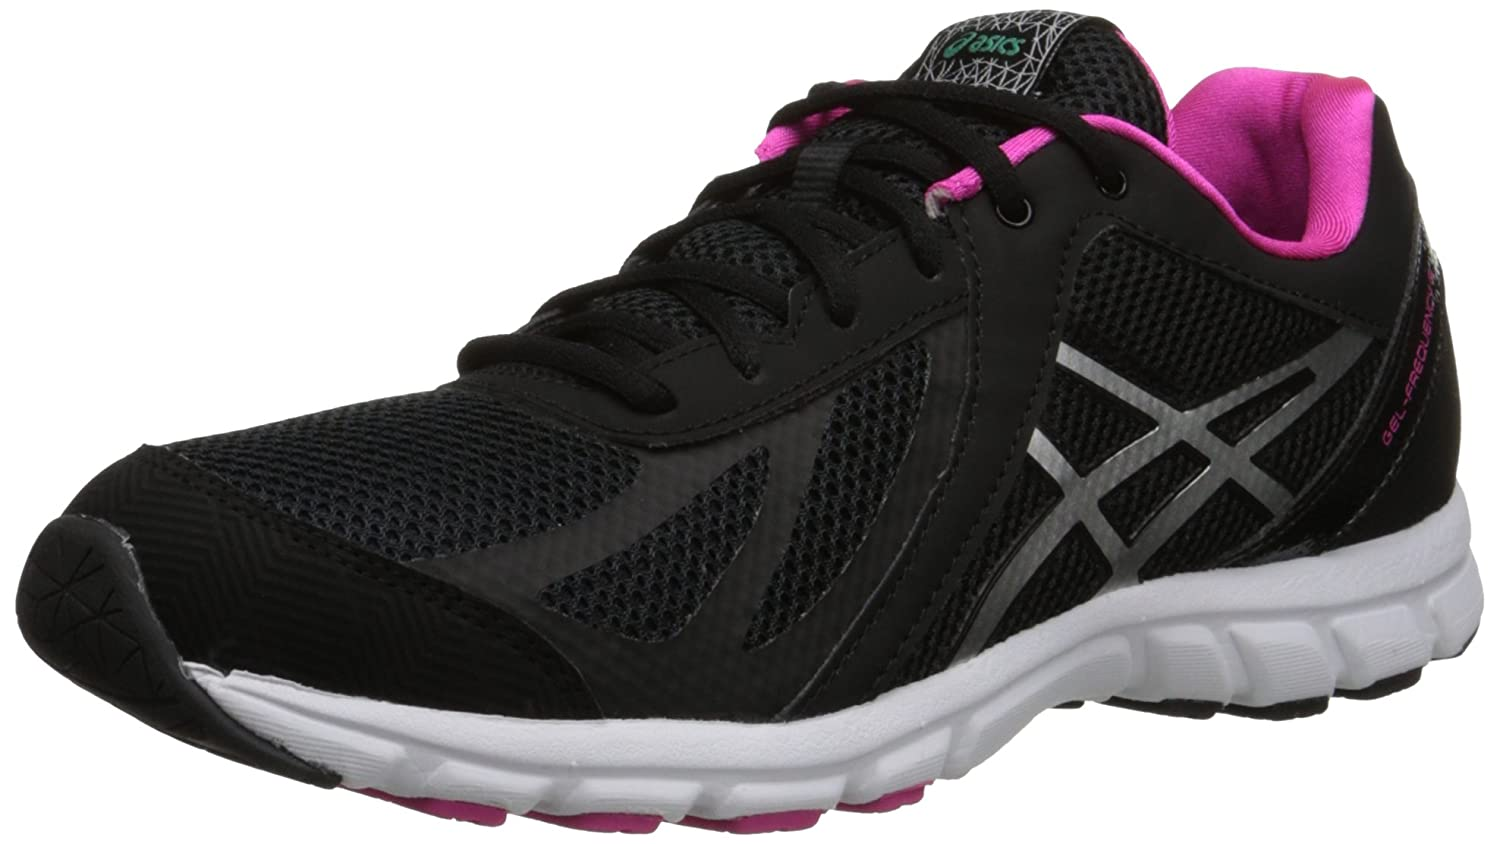 ASICS Women's Gel Frequency 3 Walking Shoe B00Q2K5XN6 6 D US|Black/Silver/Pink